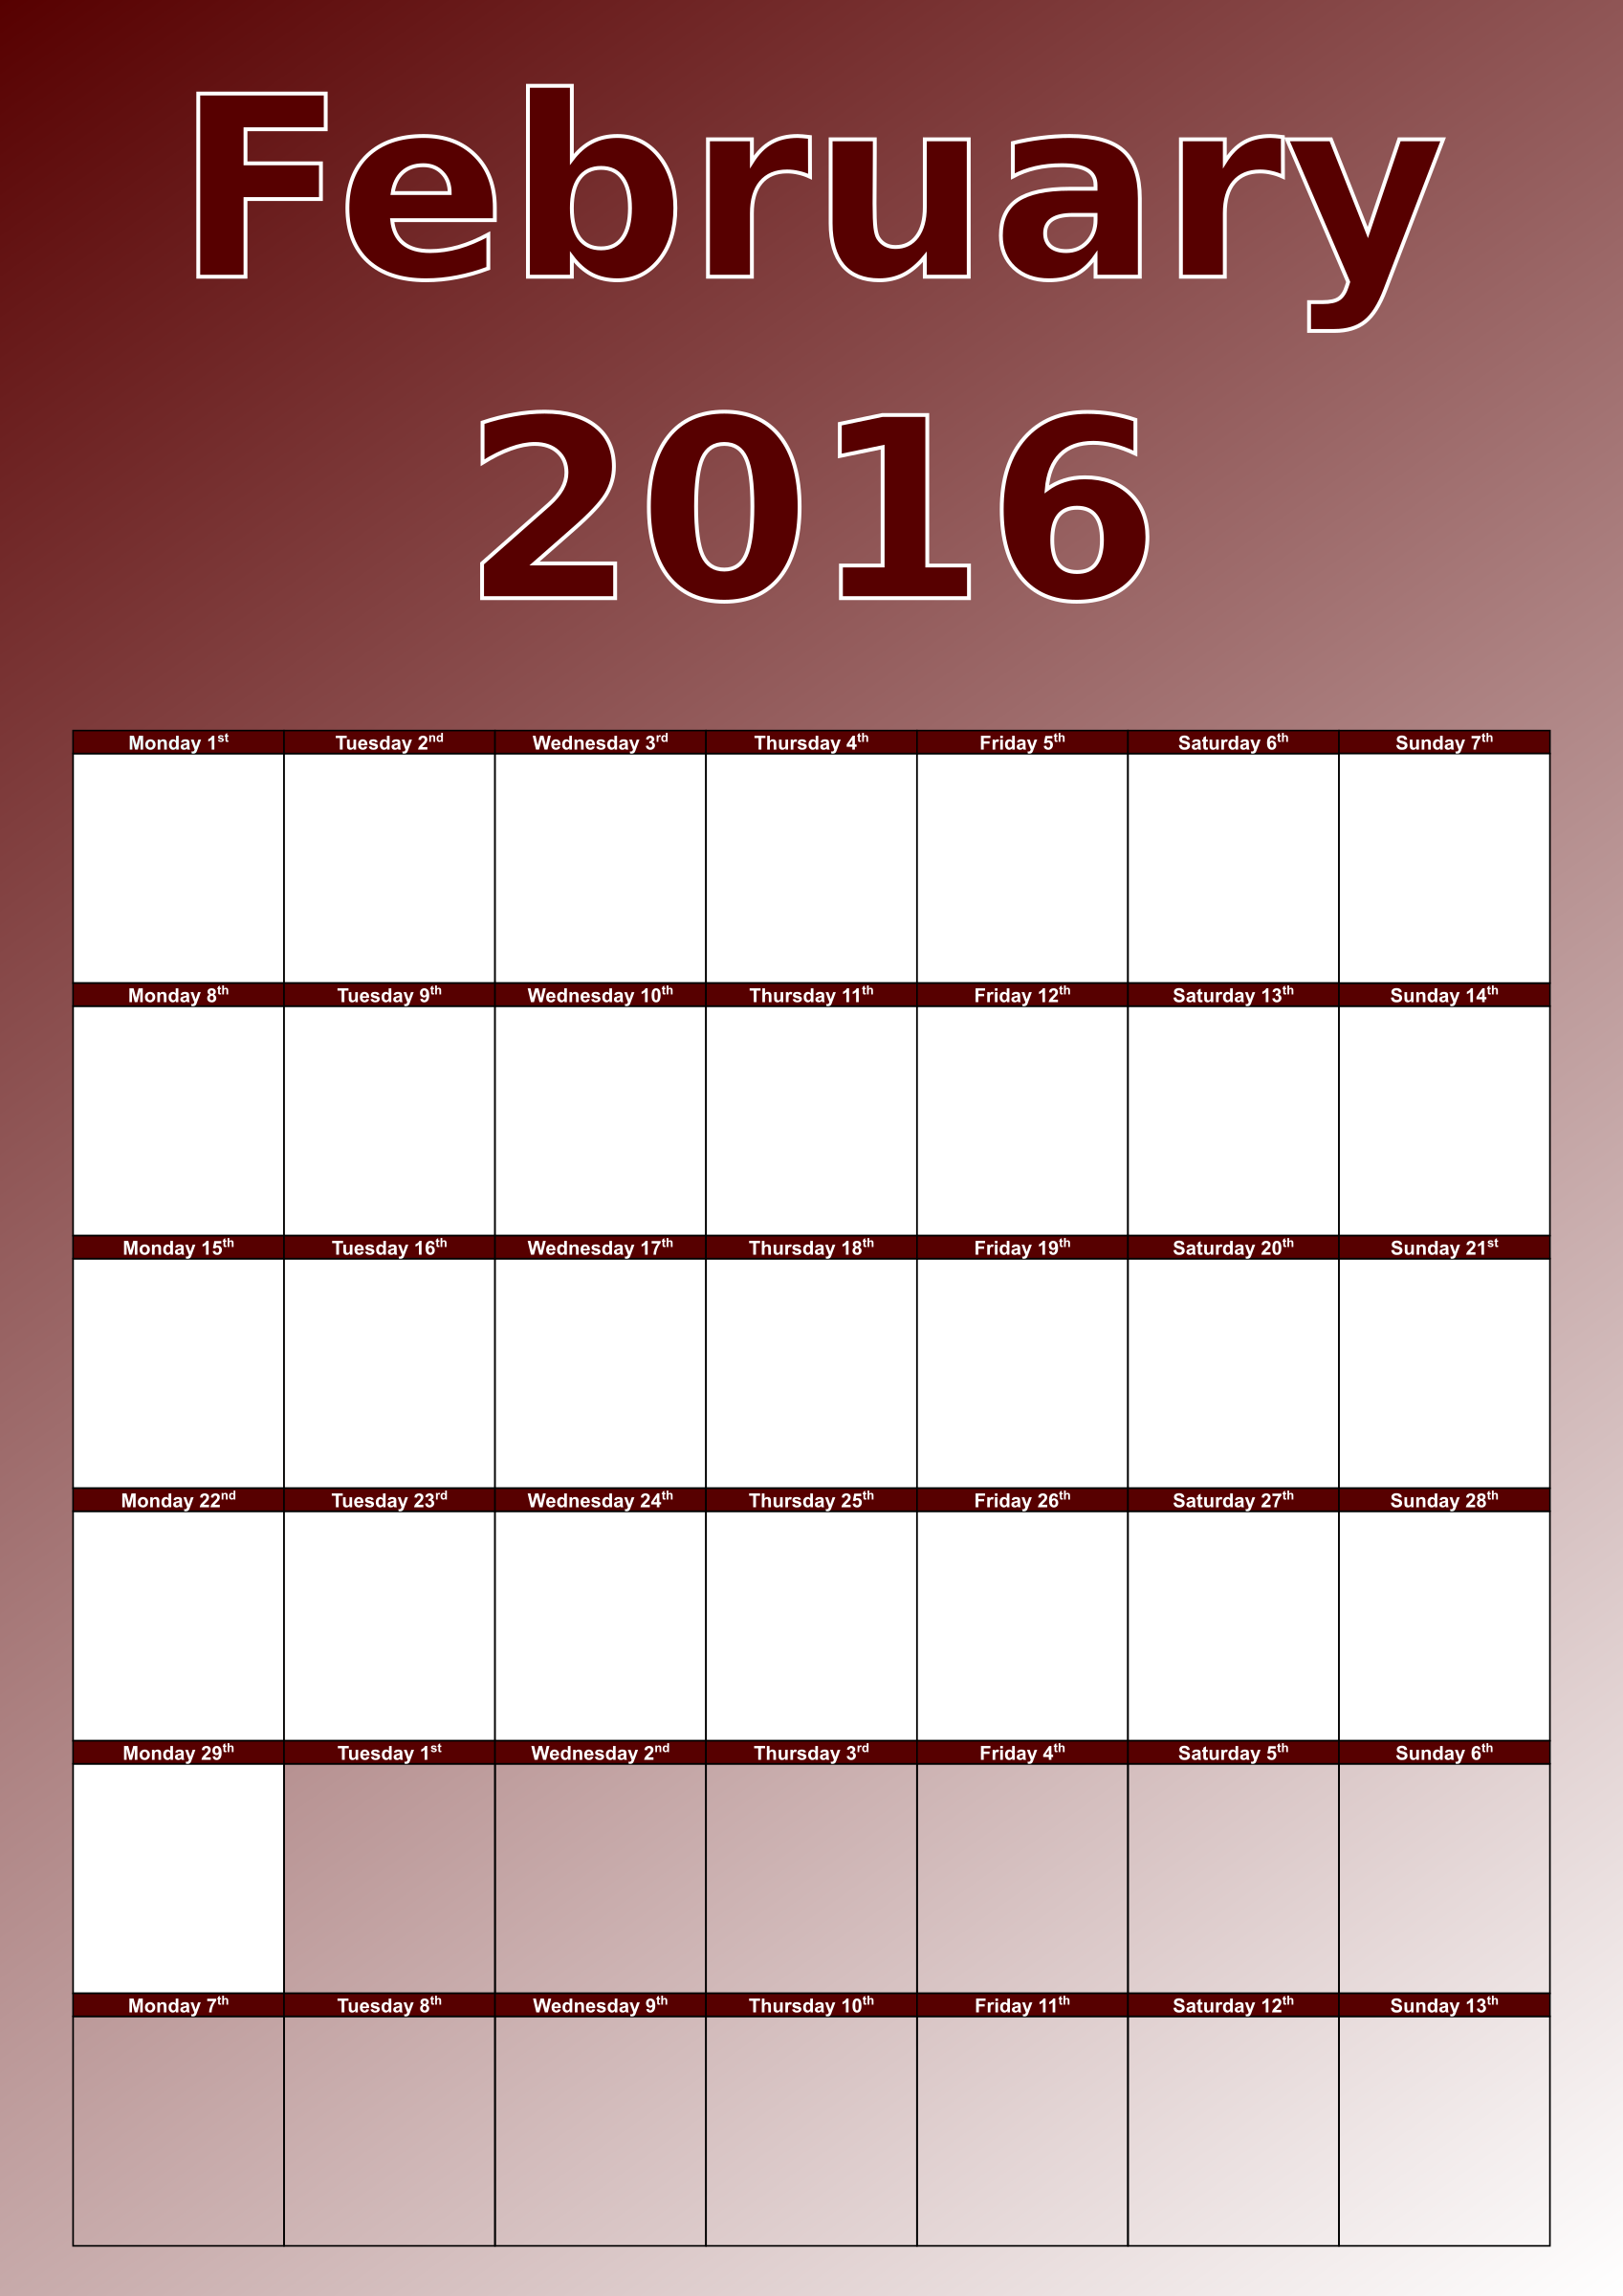 Pin Download Calendar February 2014 As A Graphicimage In Png Format on ...